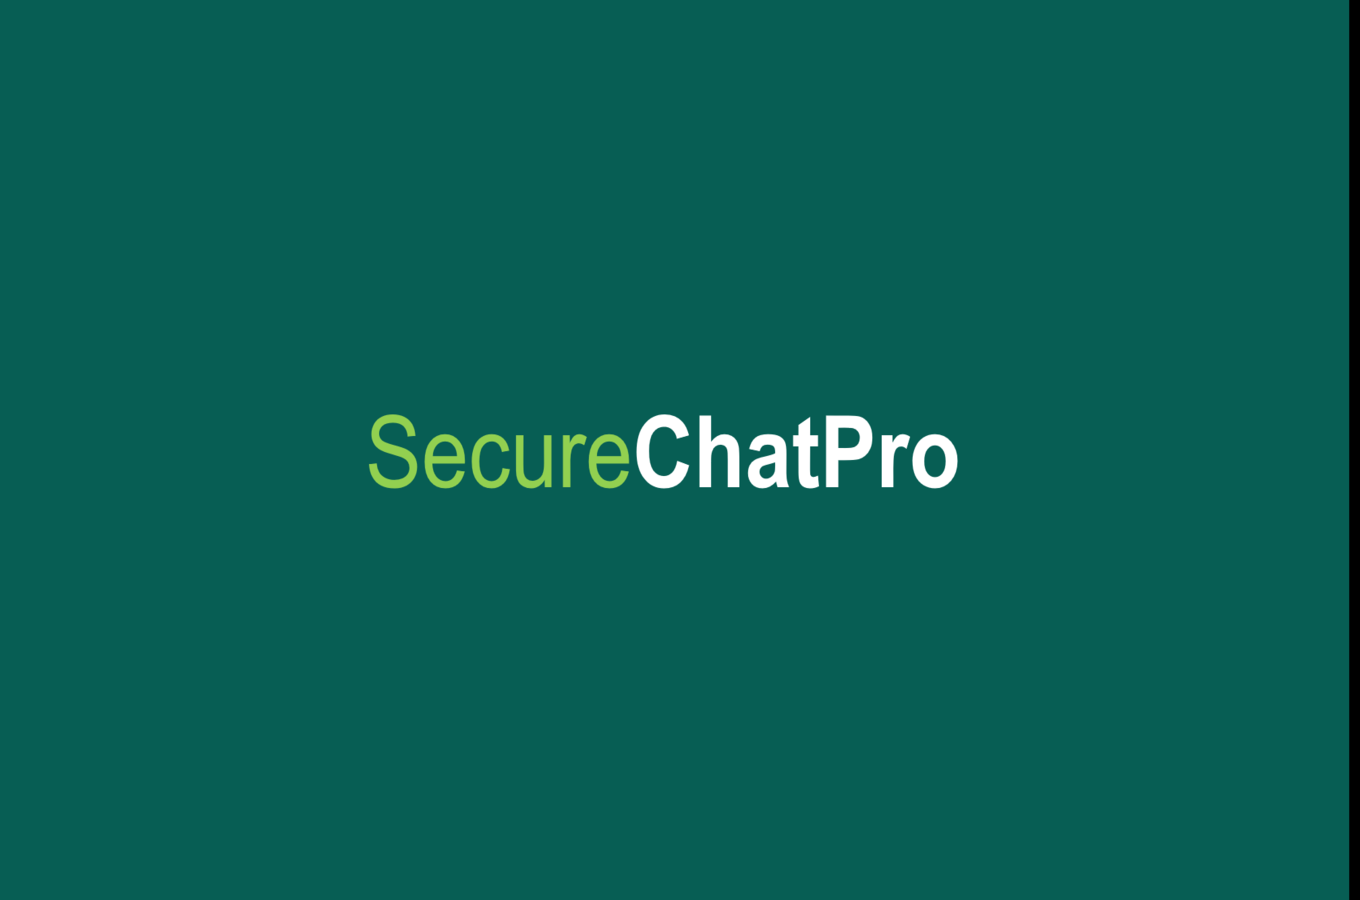 SecureChatPro - A Complete Whatsaap Clone - 1